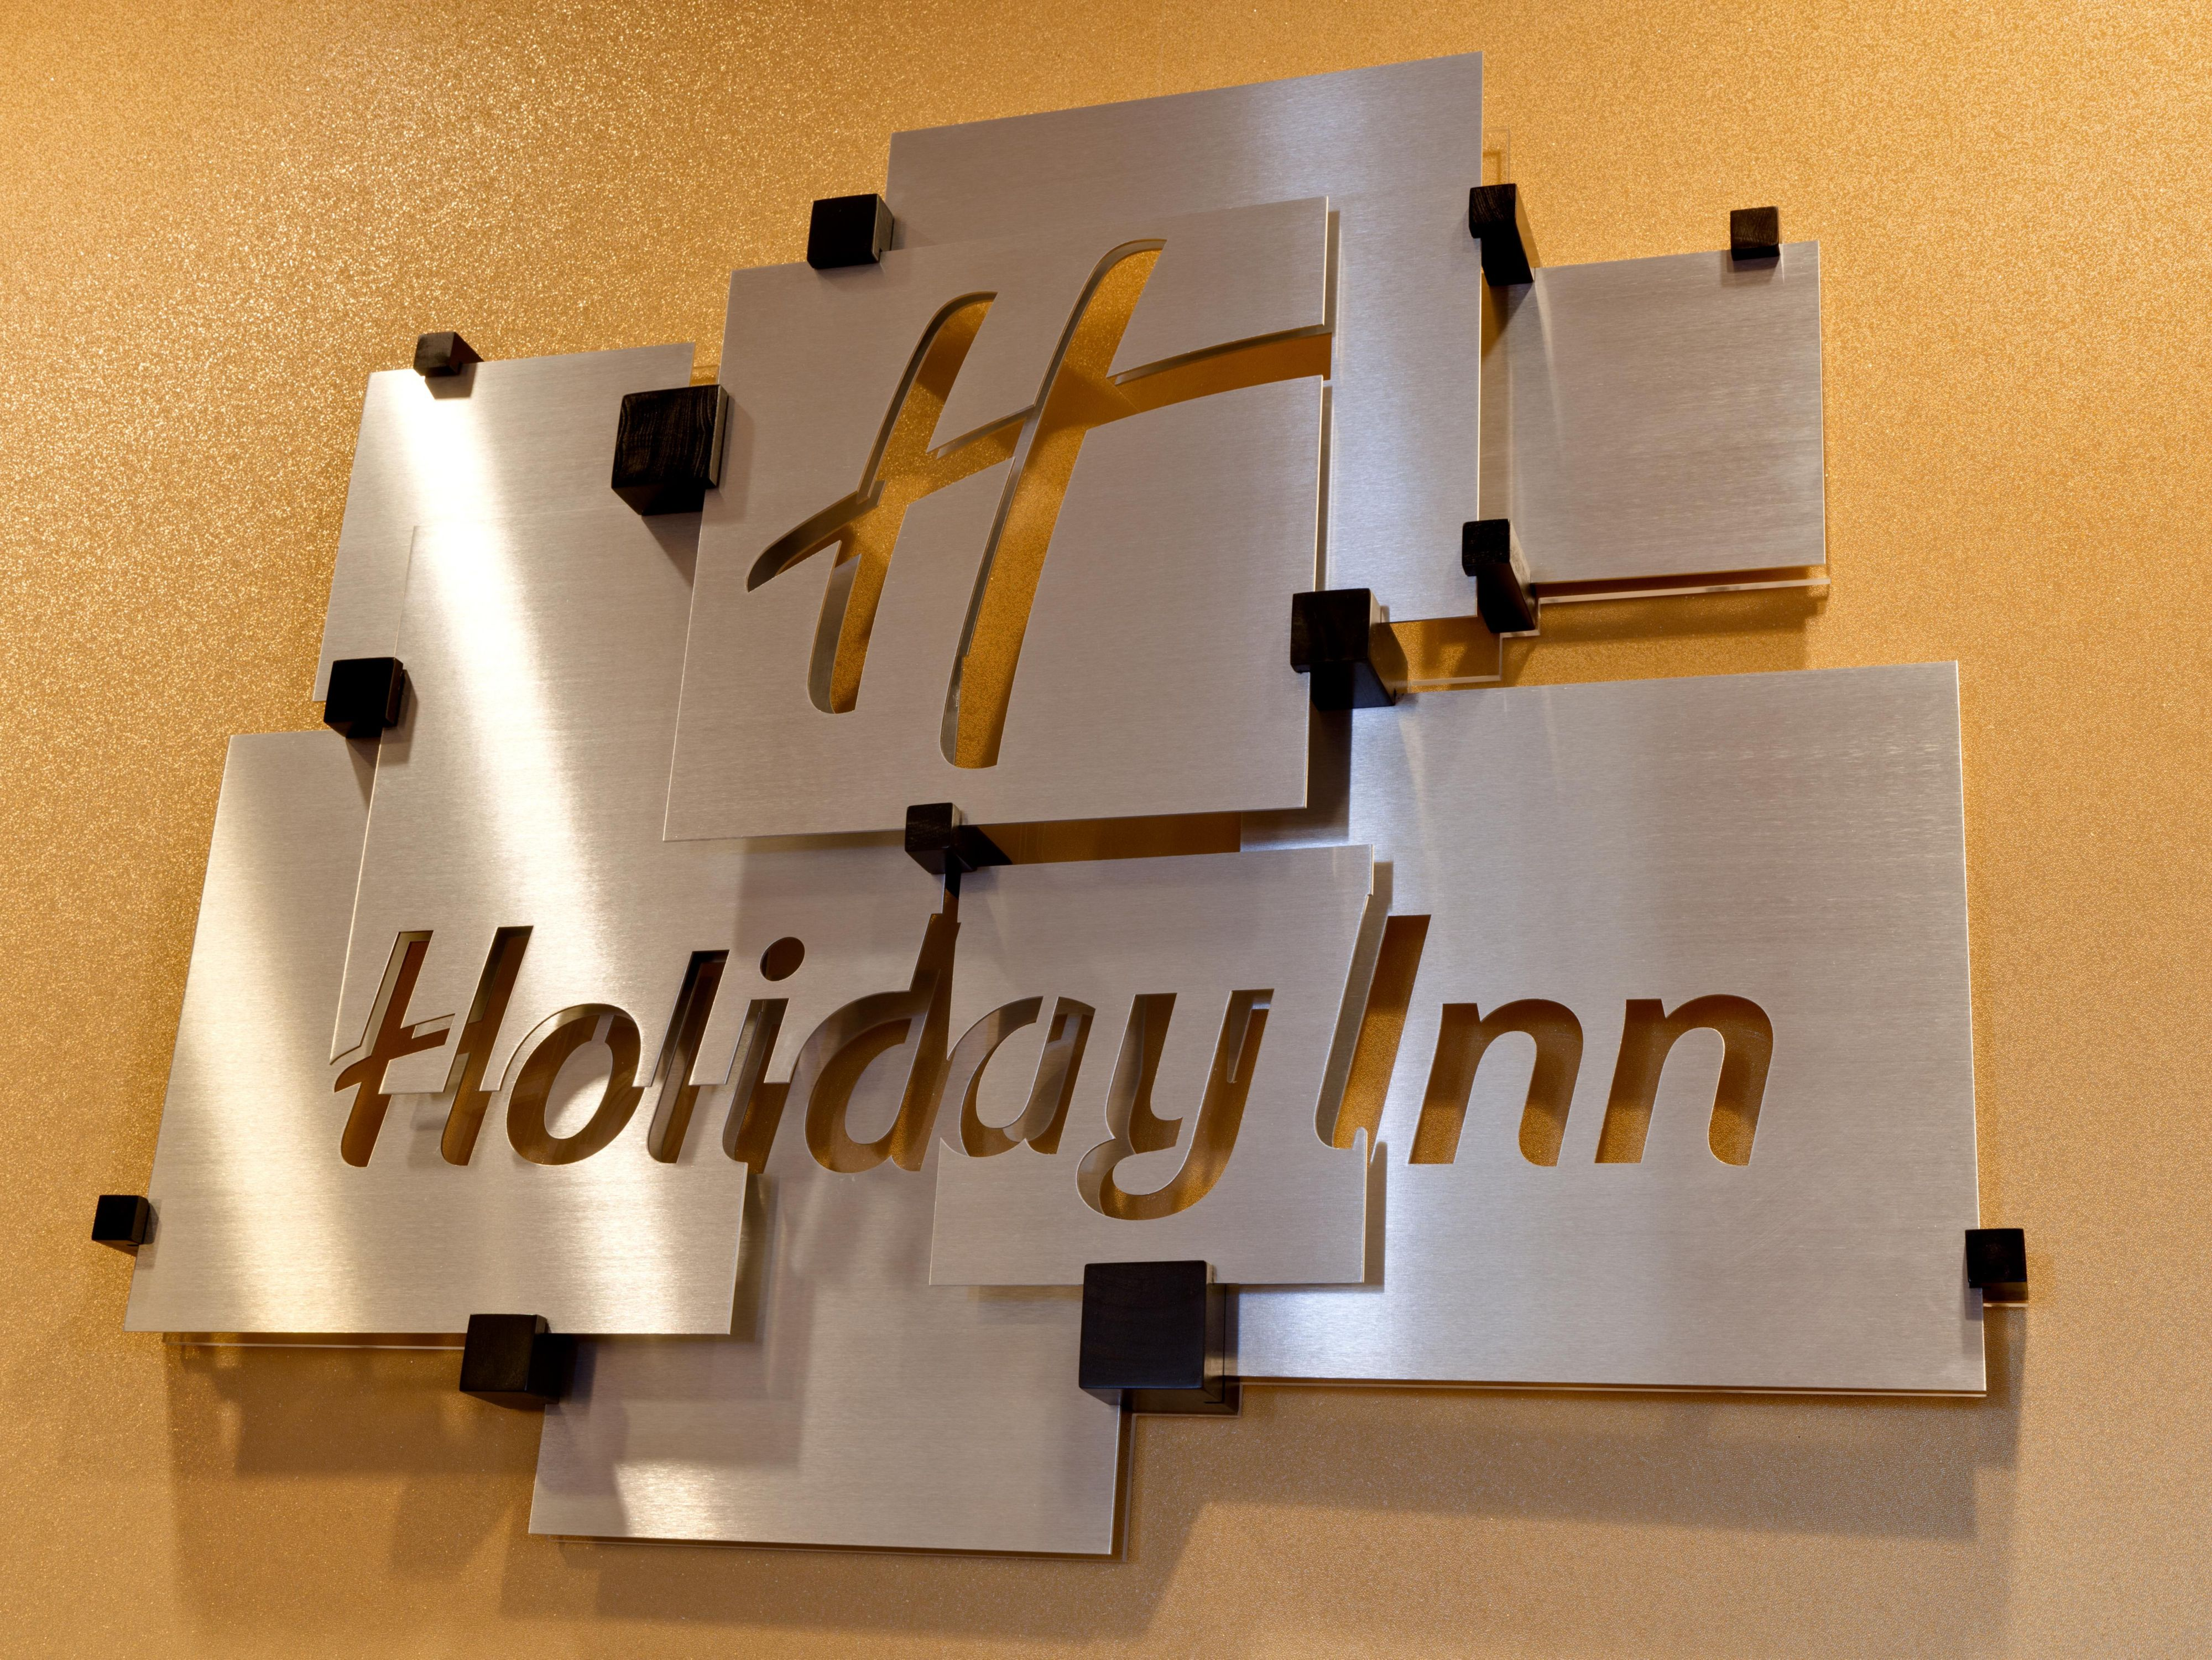 Welcome to the Holiday Inn Mart Plaza